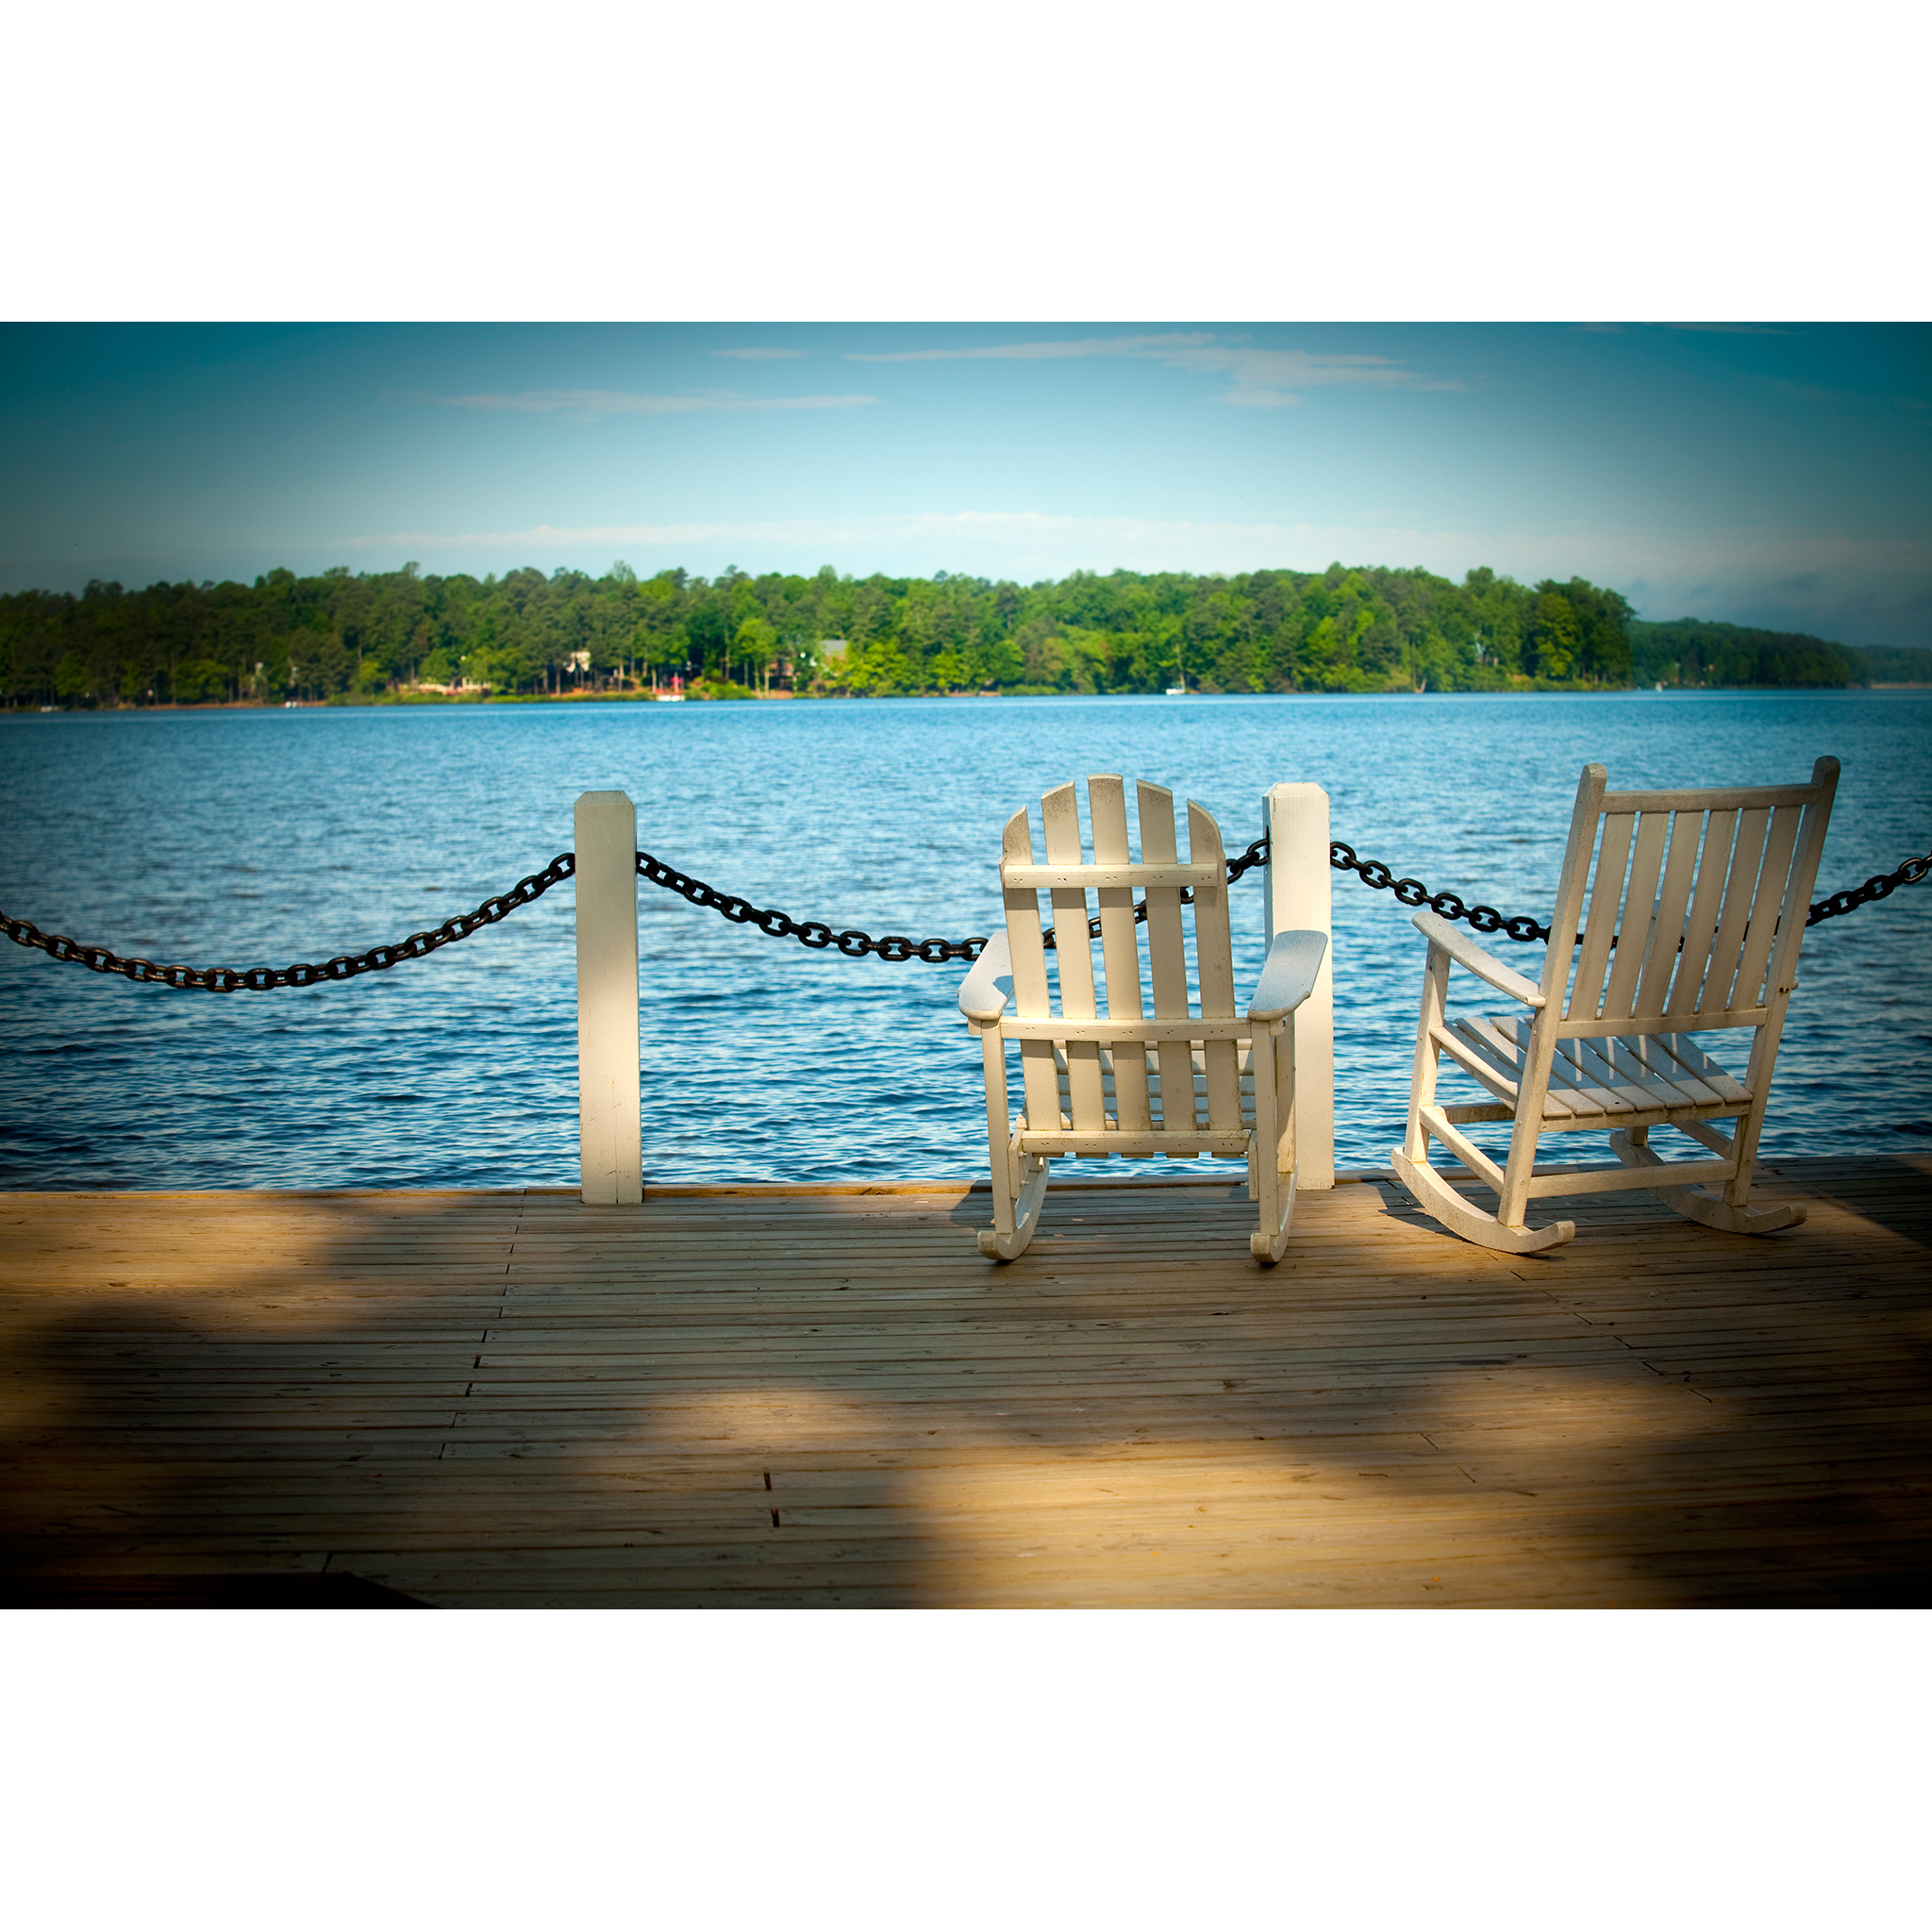 Editorial photograph of rocking chairs overlooking water